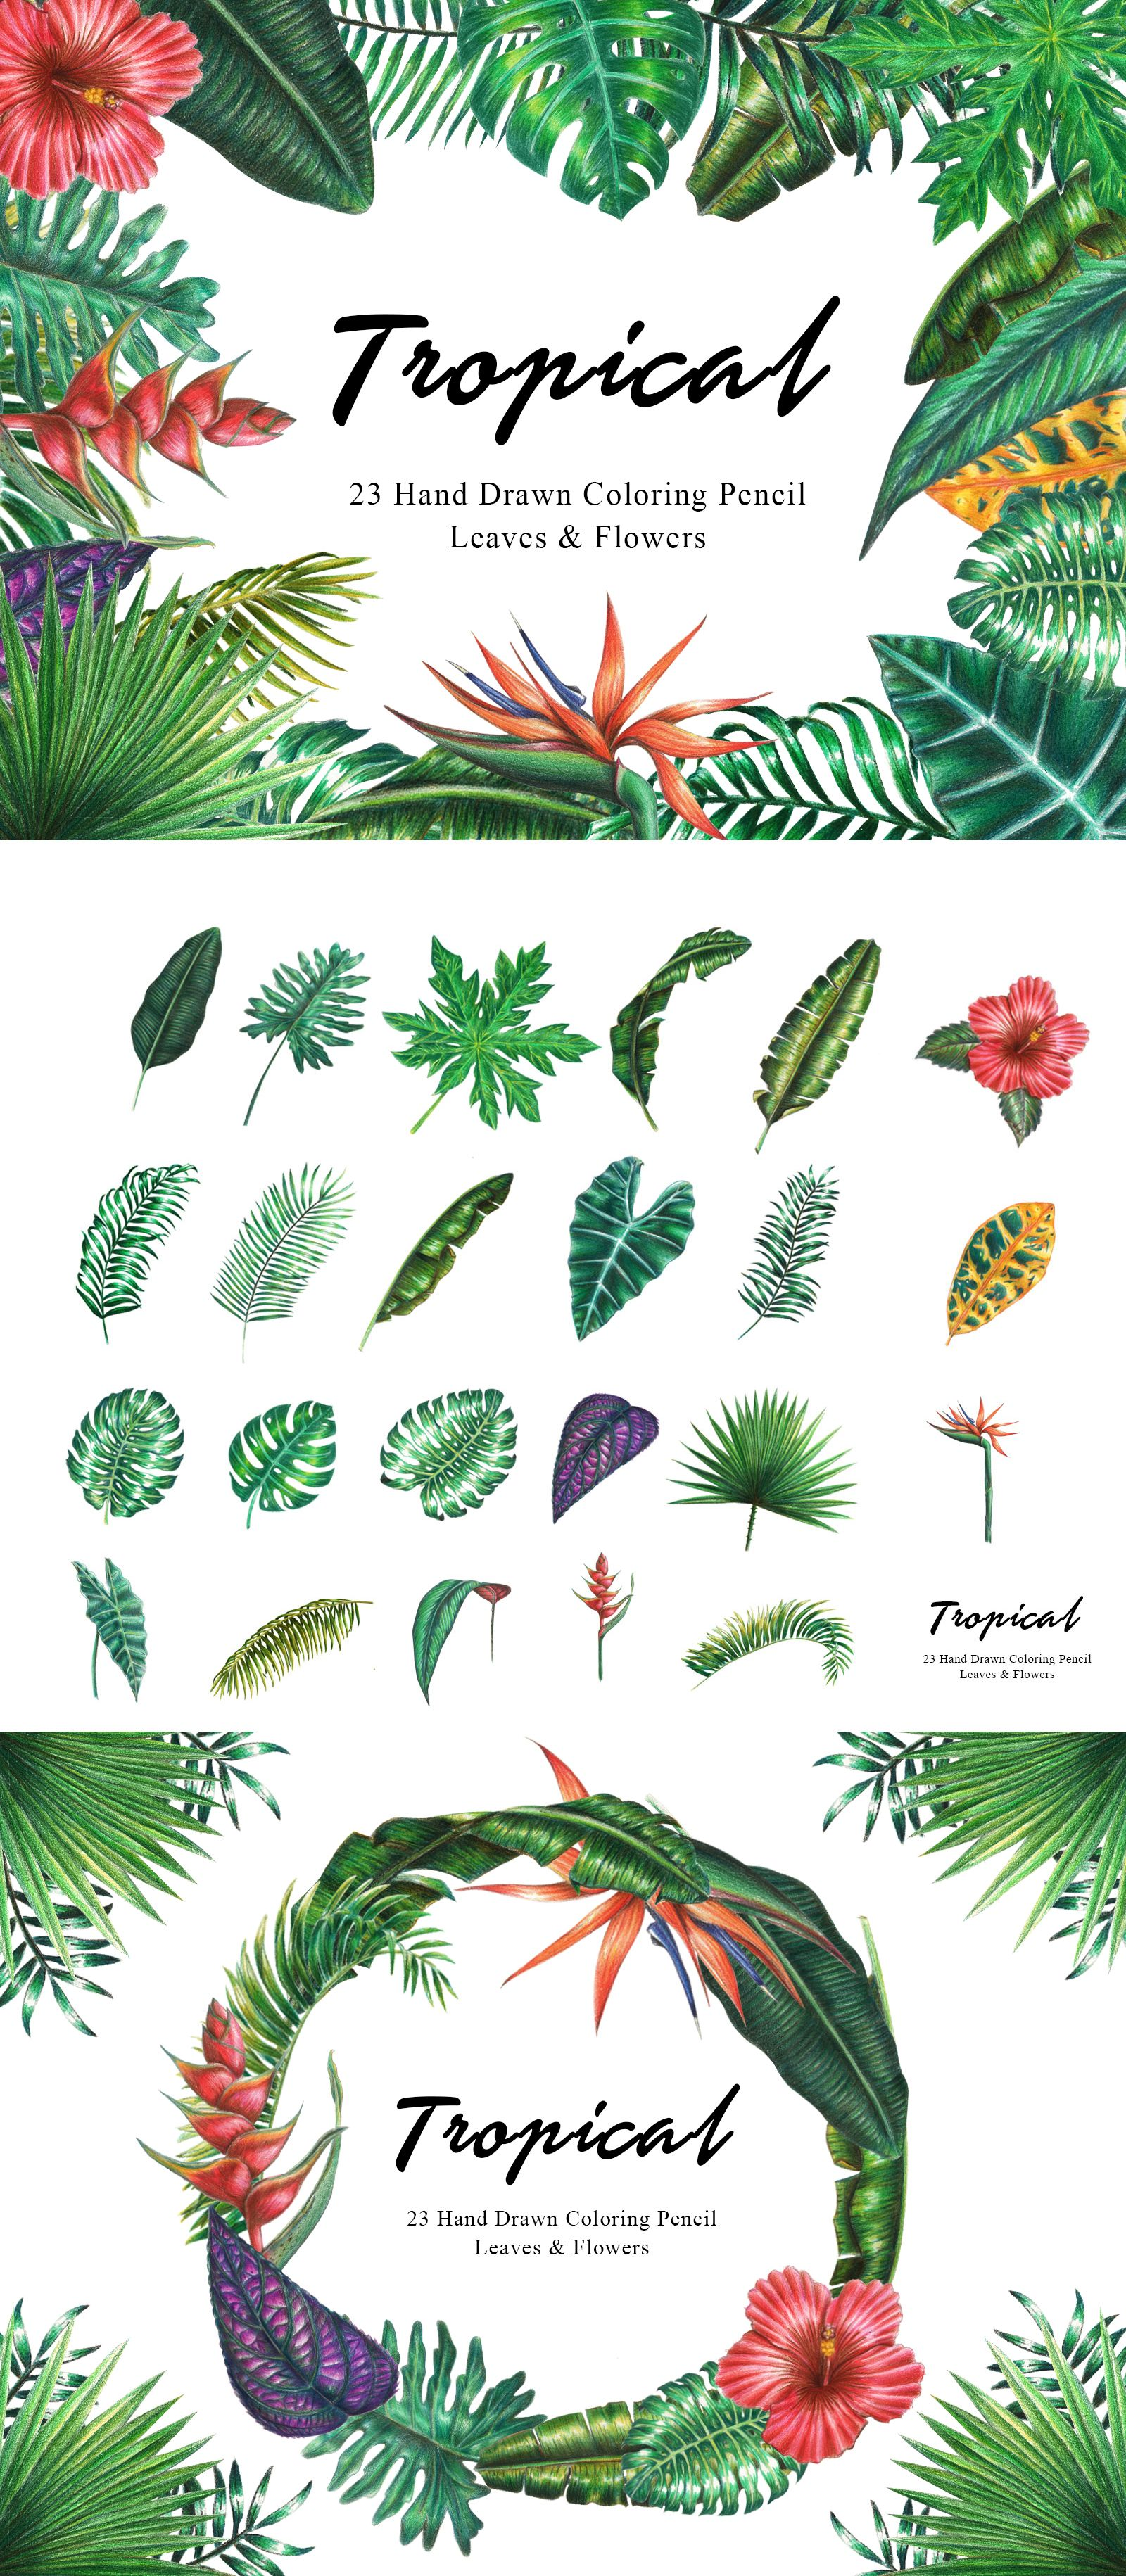 Tropical Clipart Tropical Watercolor X Colored Pencil Leaves Green Foliage Monstera Jungle Plants Wedding Invita Watercolor Plants Flower Aesthetic Plants Learn how to draw tropical leaf pictures using these outlines or print just for coloring. pinterest